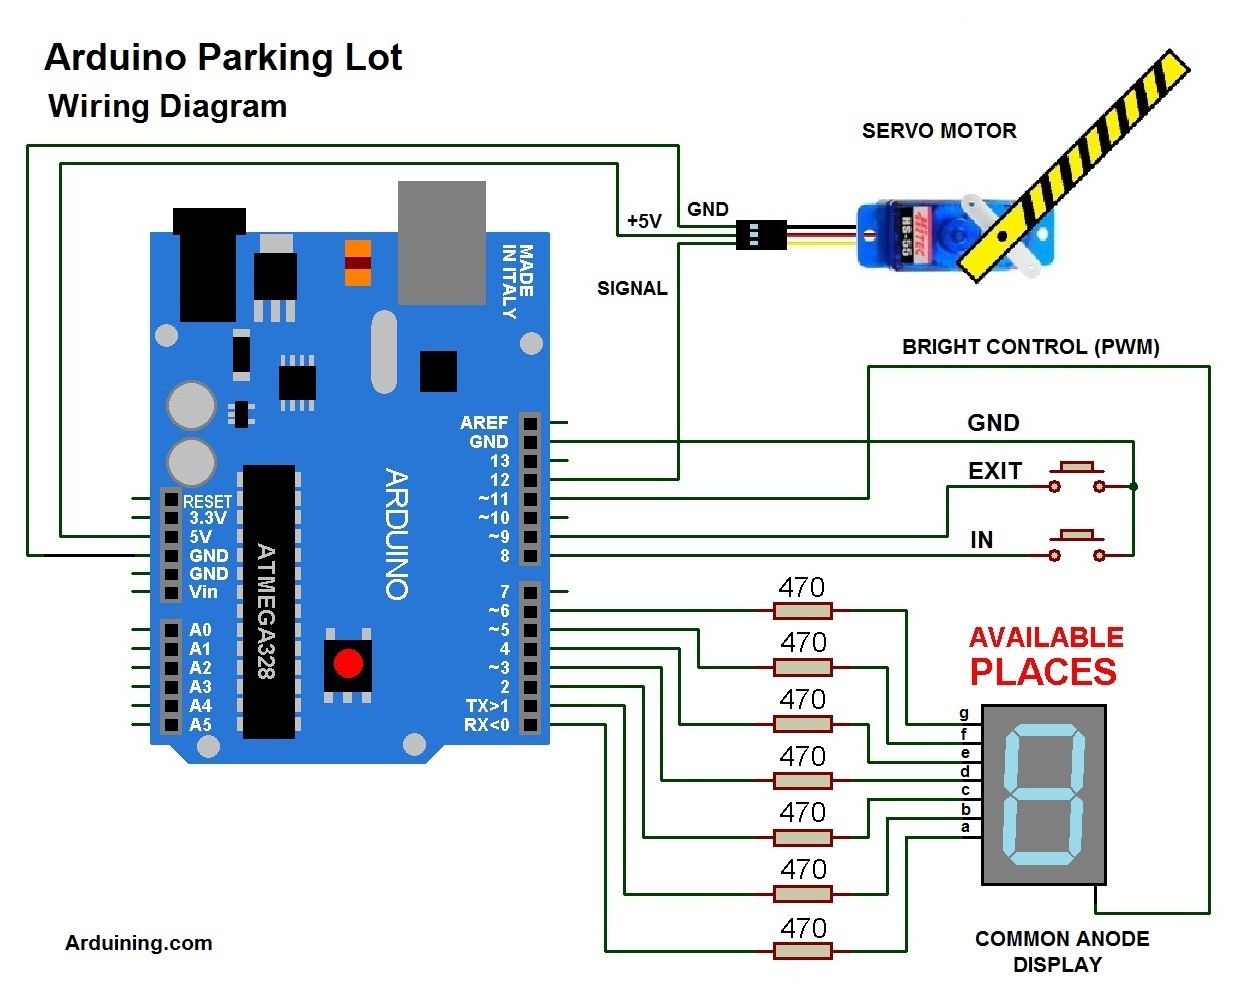 parkinglotwd arduino parking lot ( filled ) arduining came barrier wiring diagram at fashall.co